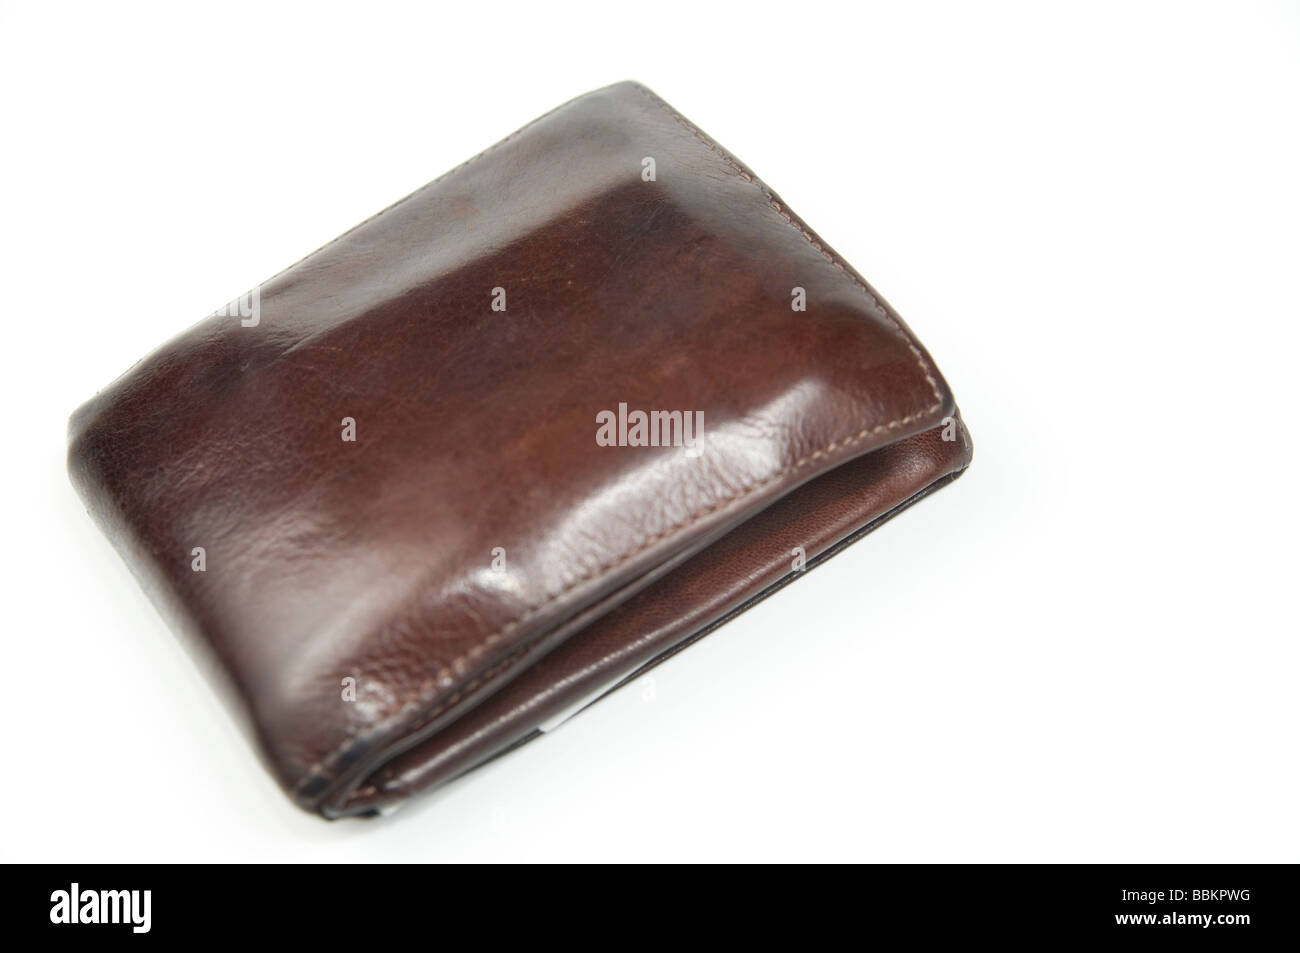 Cutout of a Man's wallet on white background - Stock Image